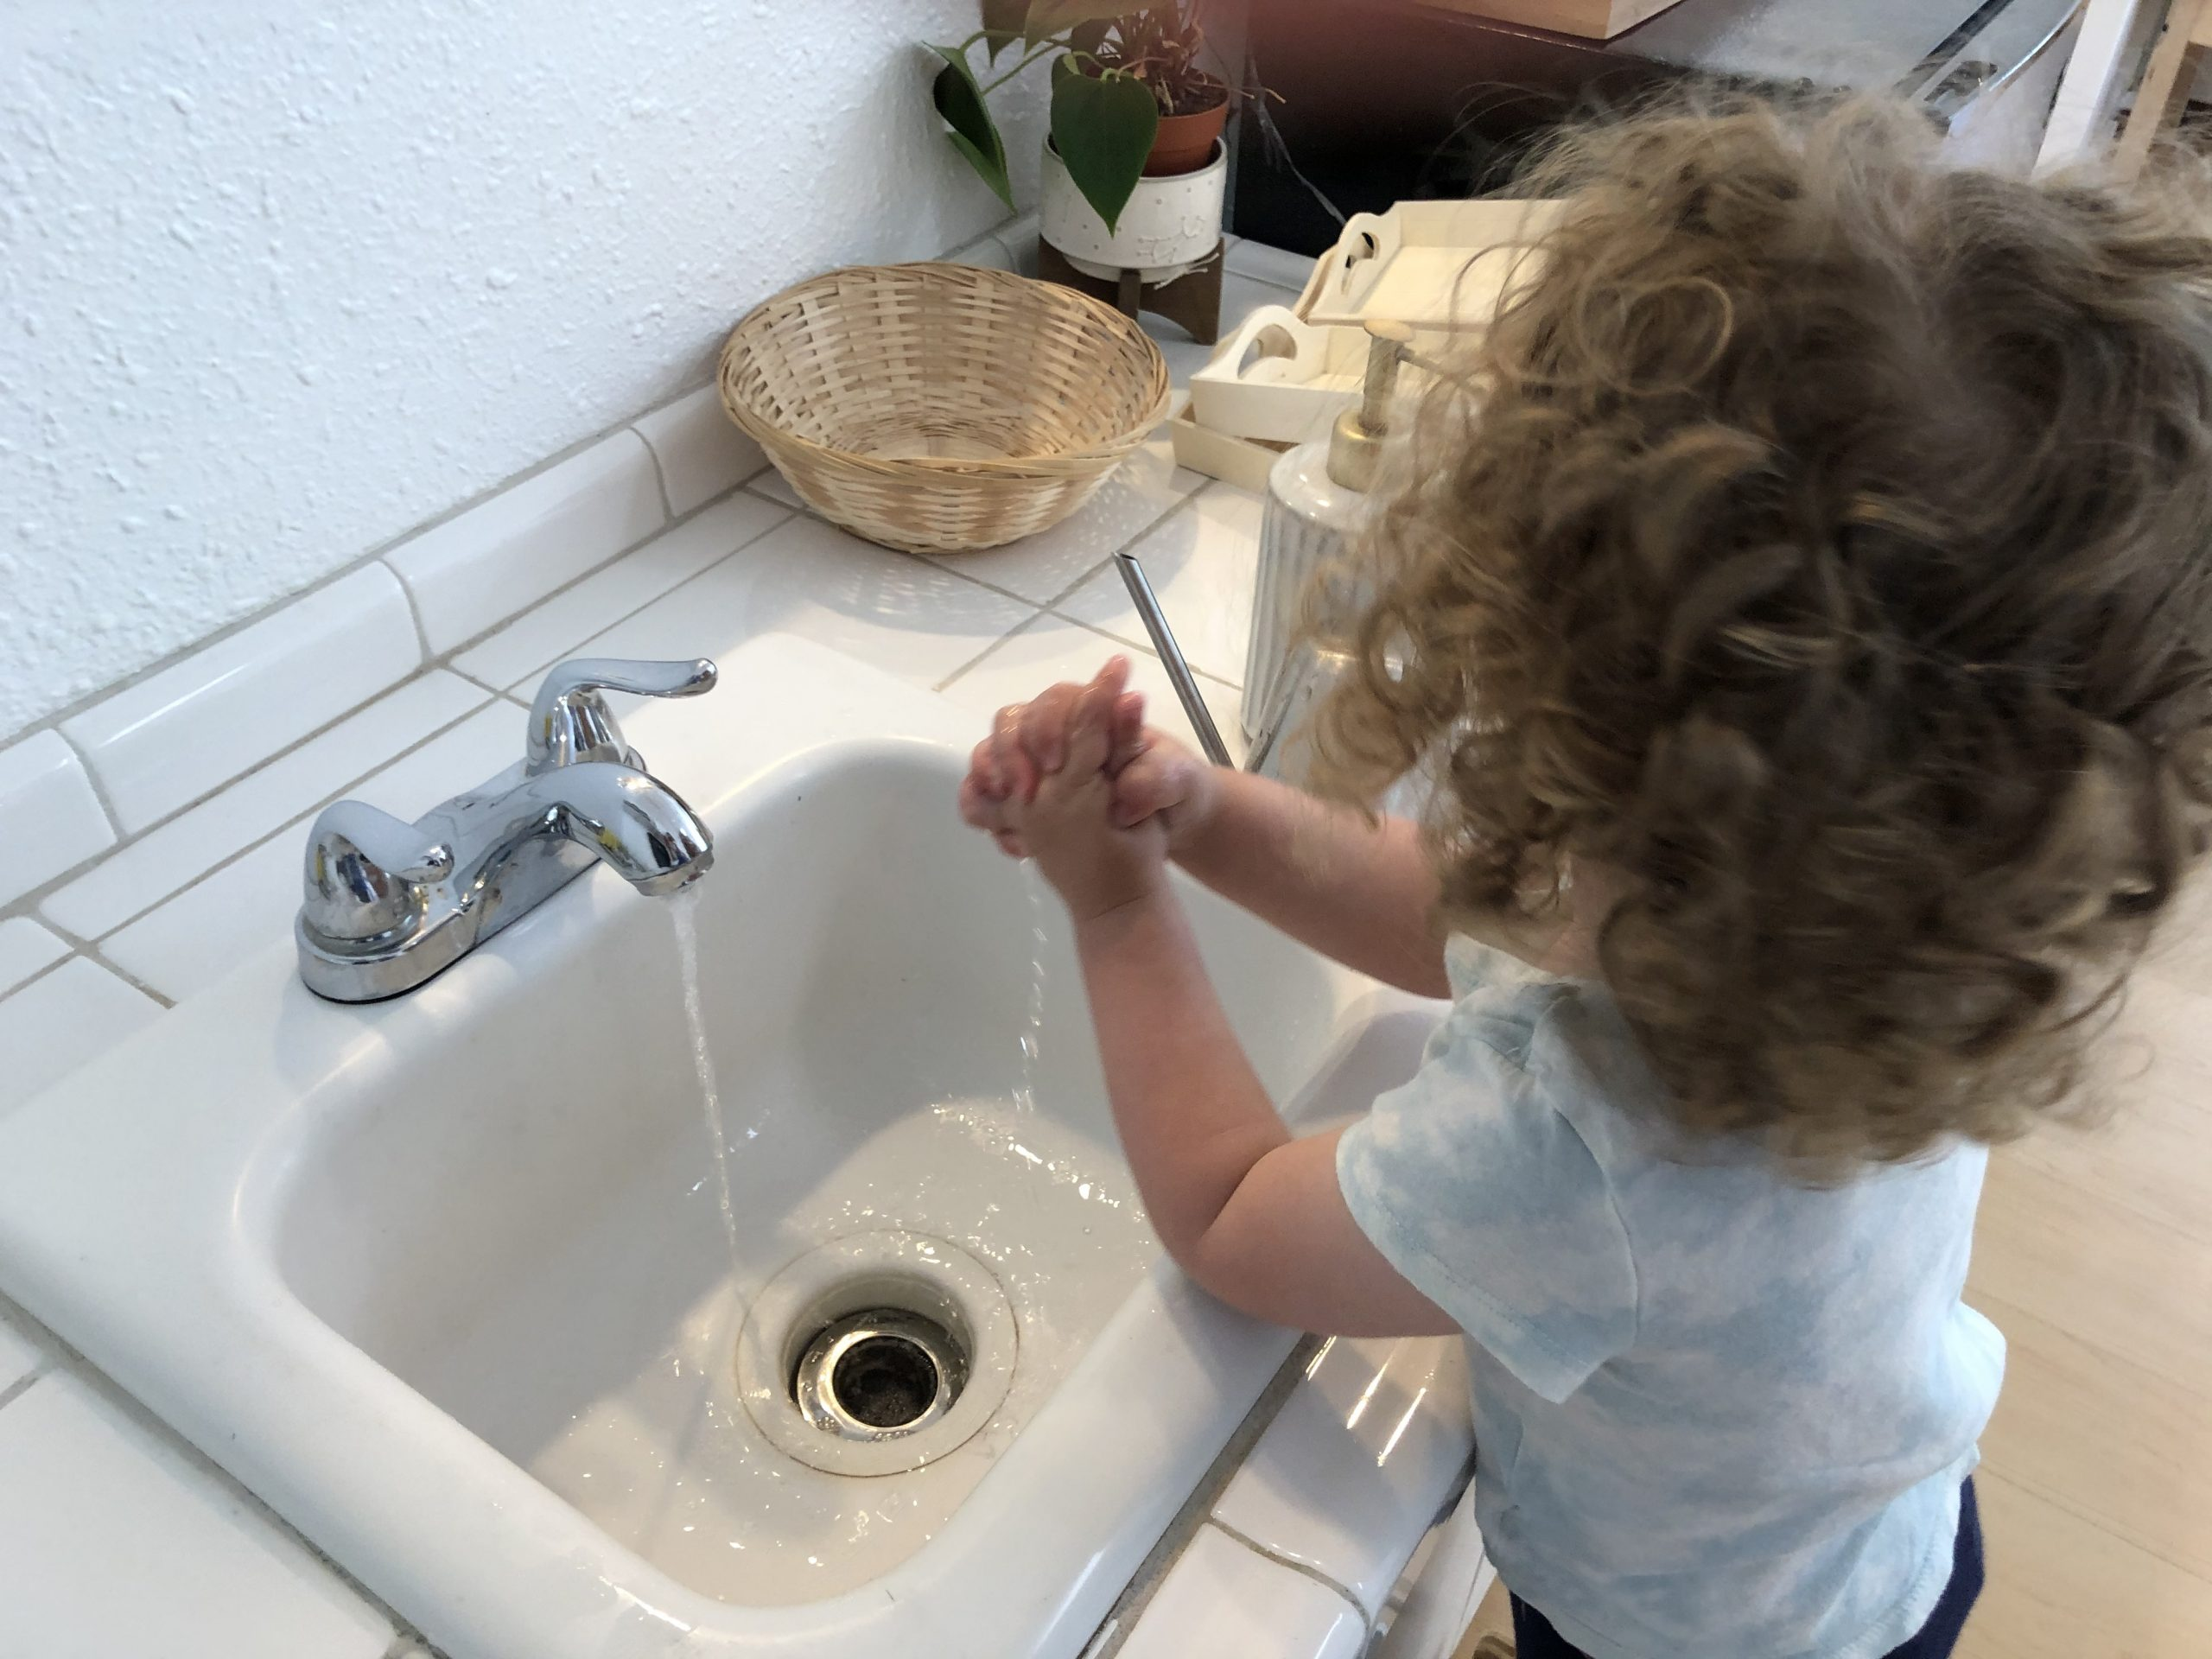 Toddlers learn how to wash their hands with a child size sink